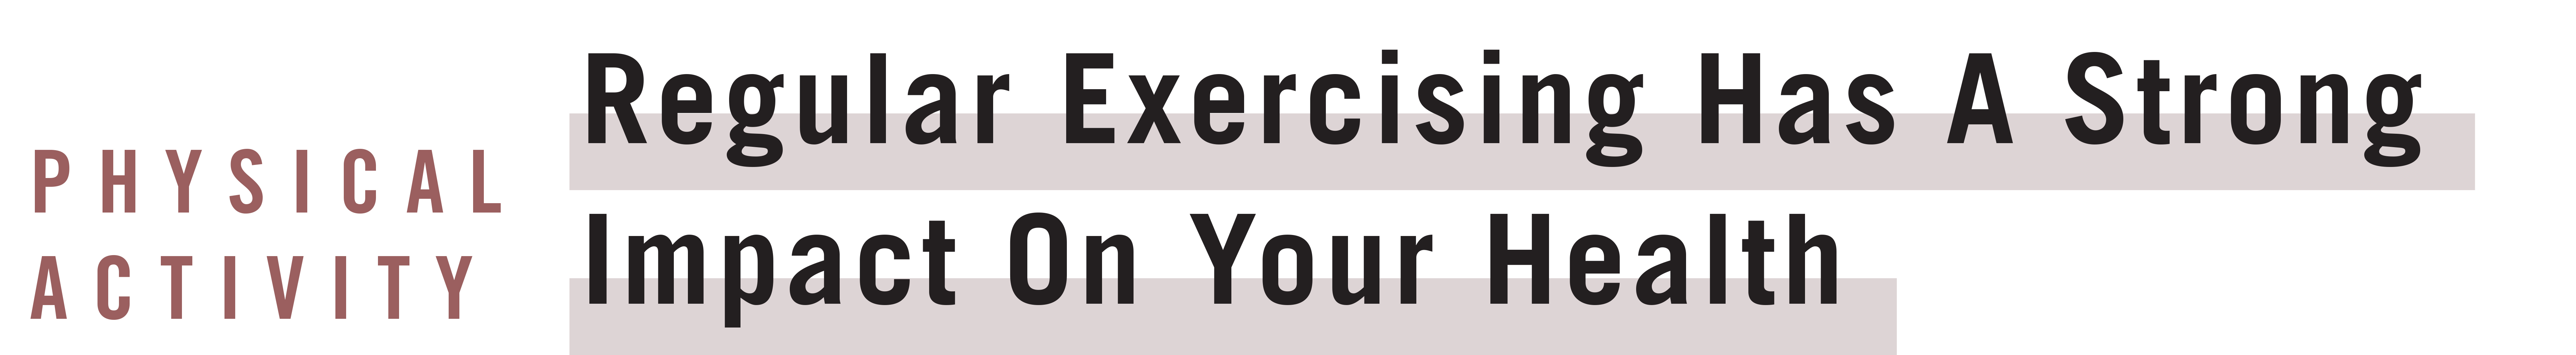 Regular Exercise Impacts Health WP